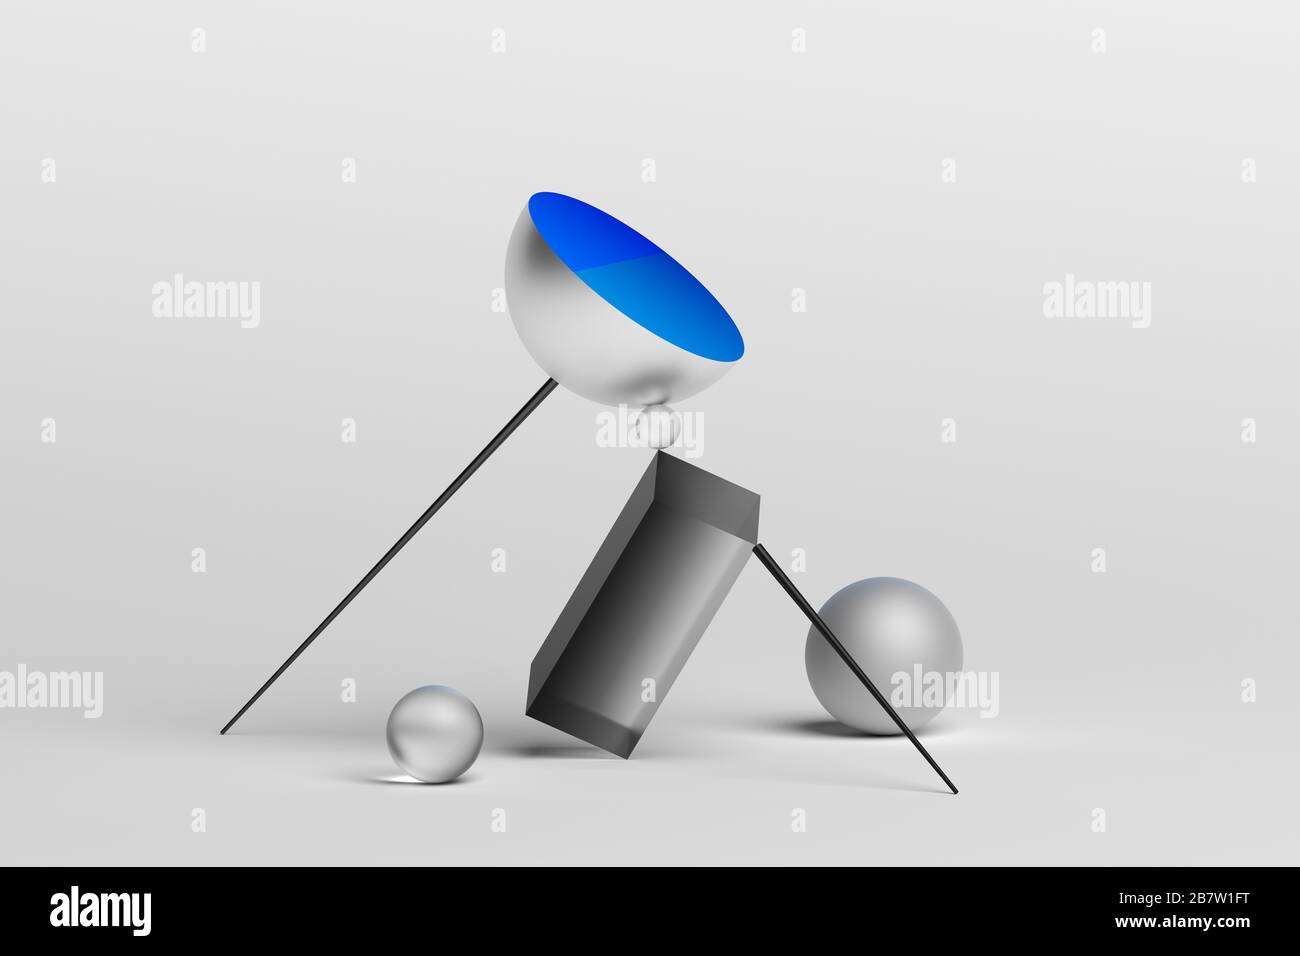 Abstract 3d rendering of geometric shapes. Surreal composition. Balance concept. Modern design for poster, cover, branding, banner, placard Stock Photo